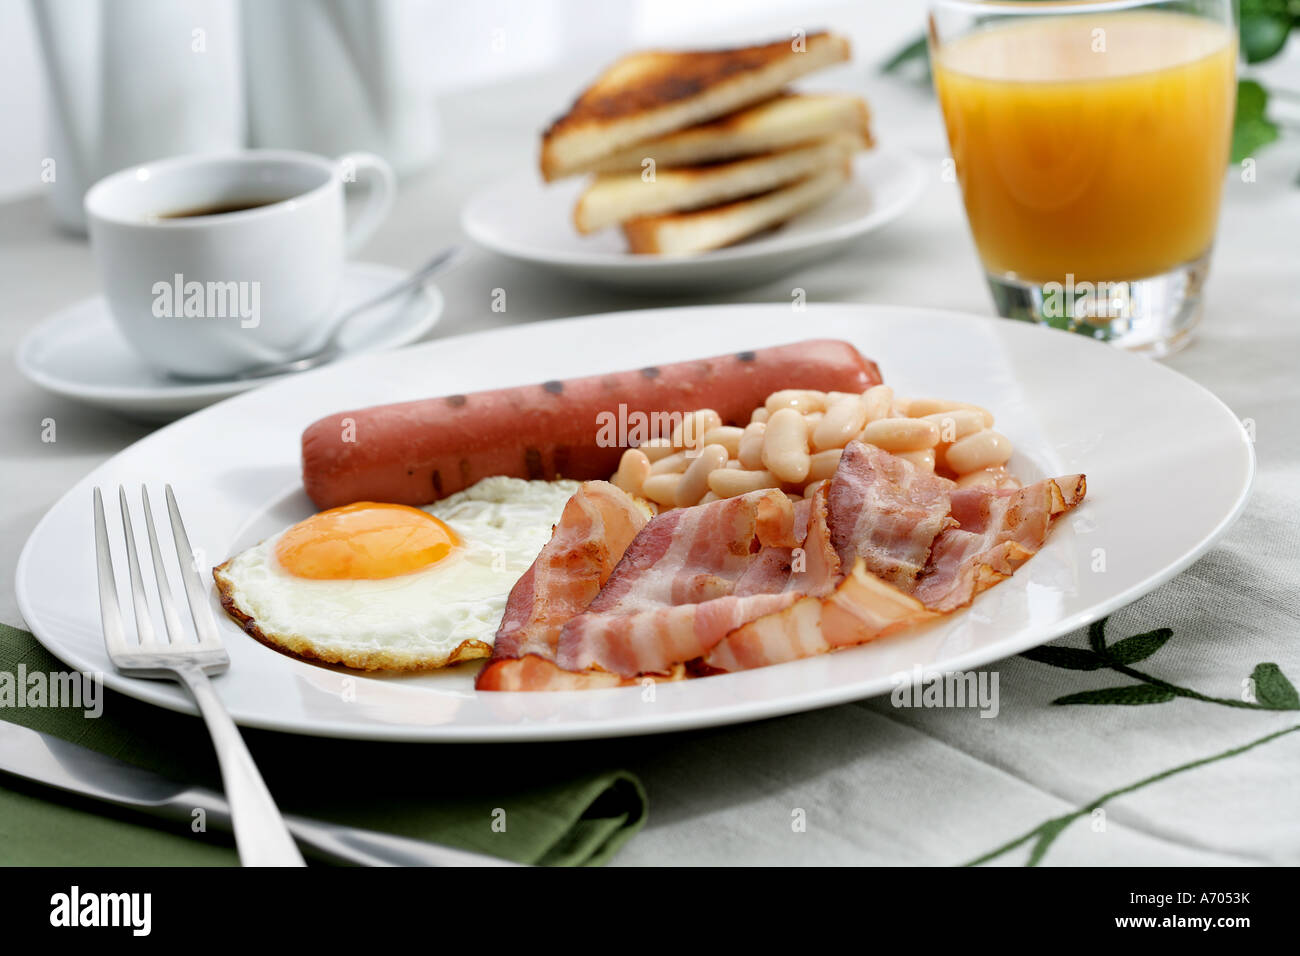 English Breakfast Coffee Fried Eggs Bacon Sausages Bread Juice And